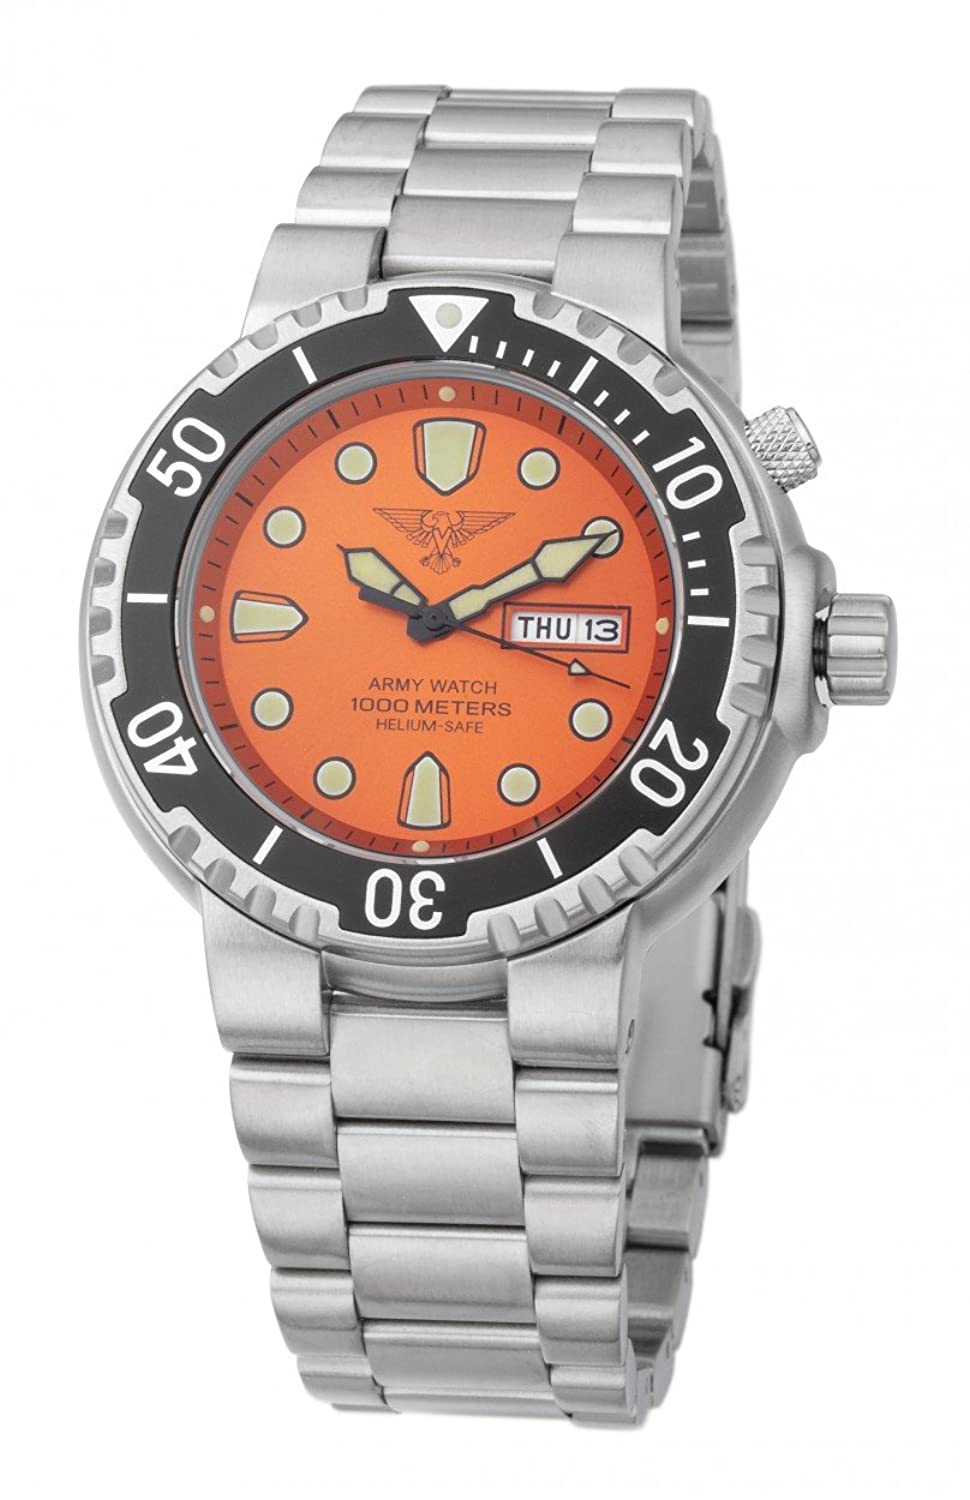 Army Watch Taucheruhr - 100 ATM-1000 Meter - Edelstahlband - Orange - EP842